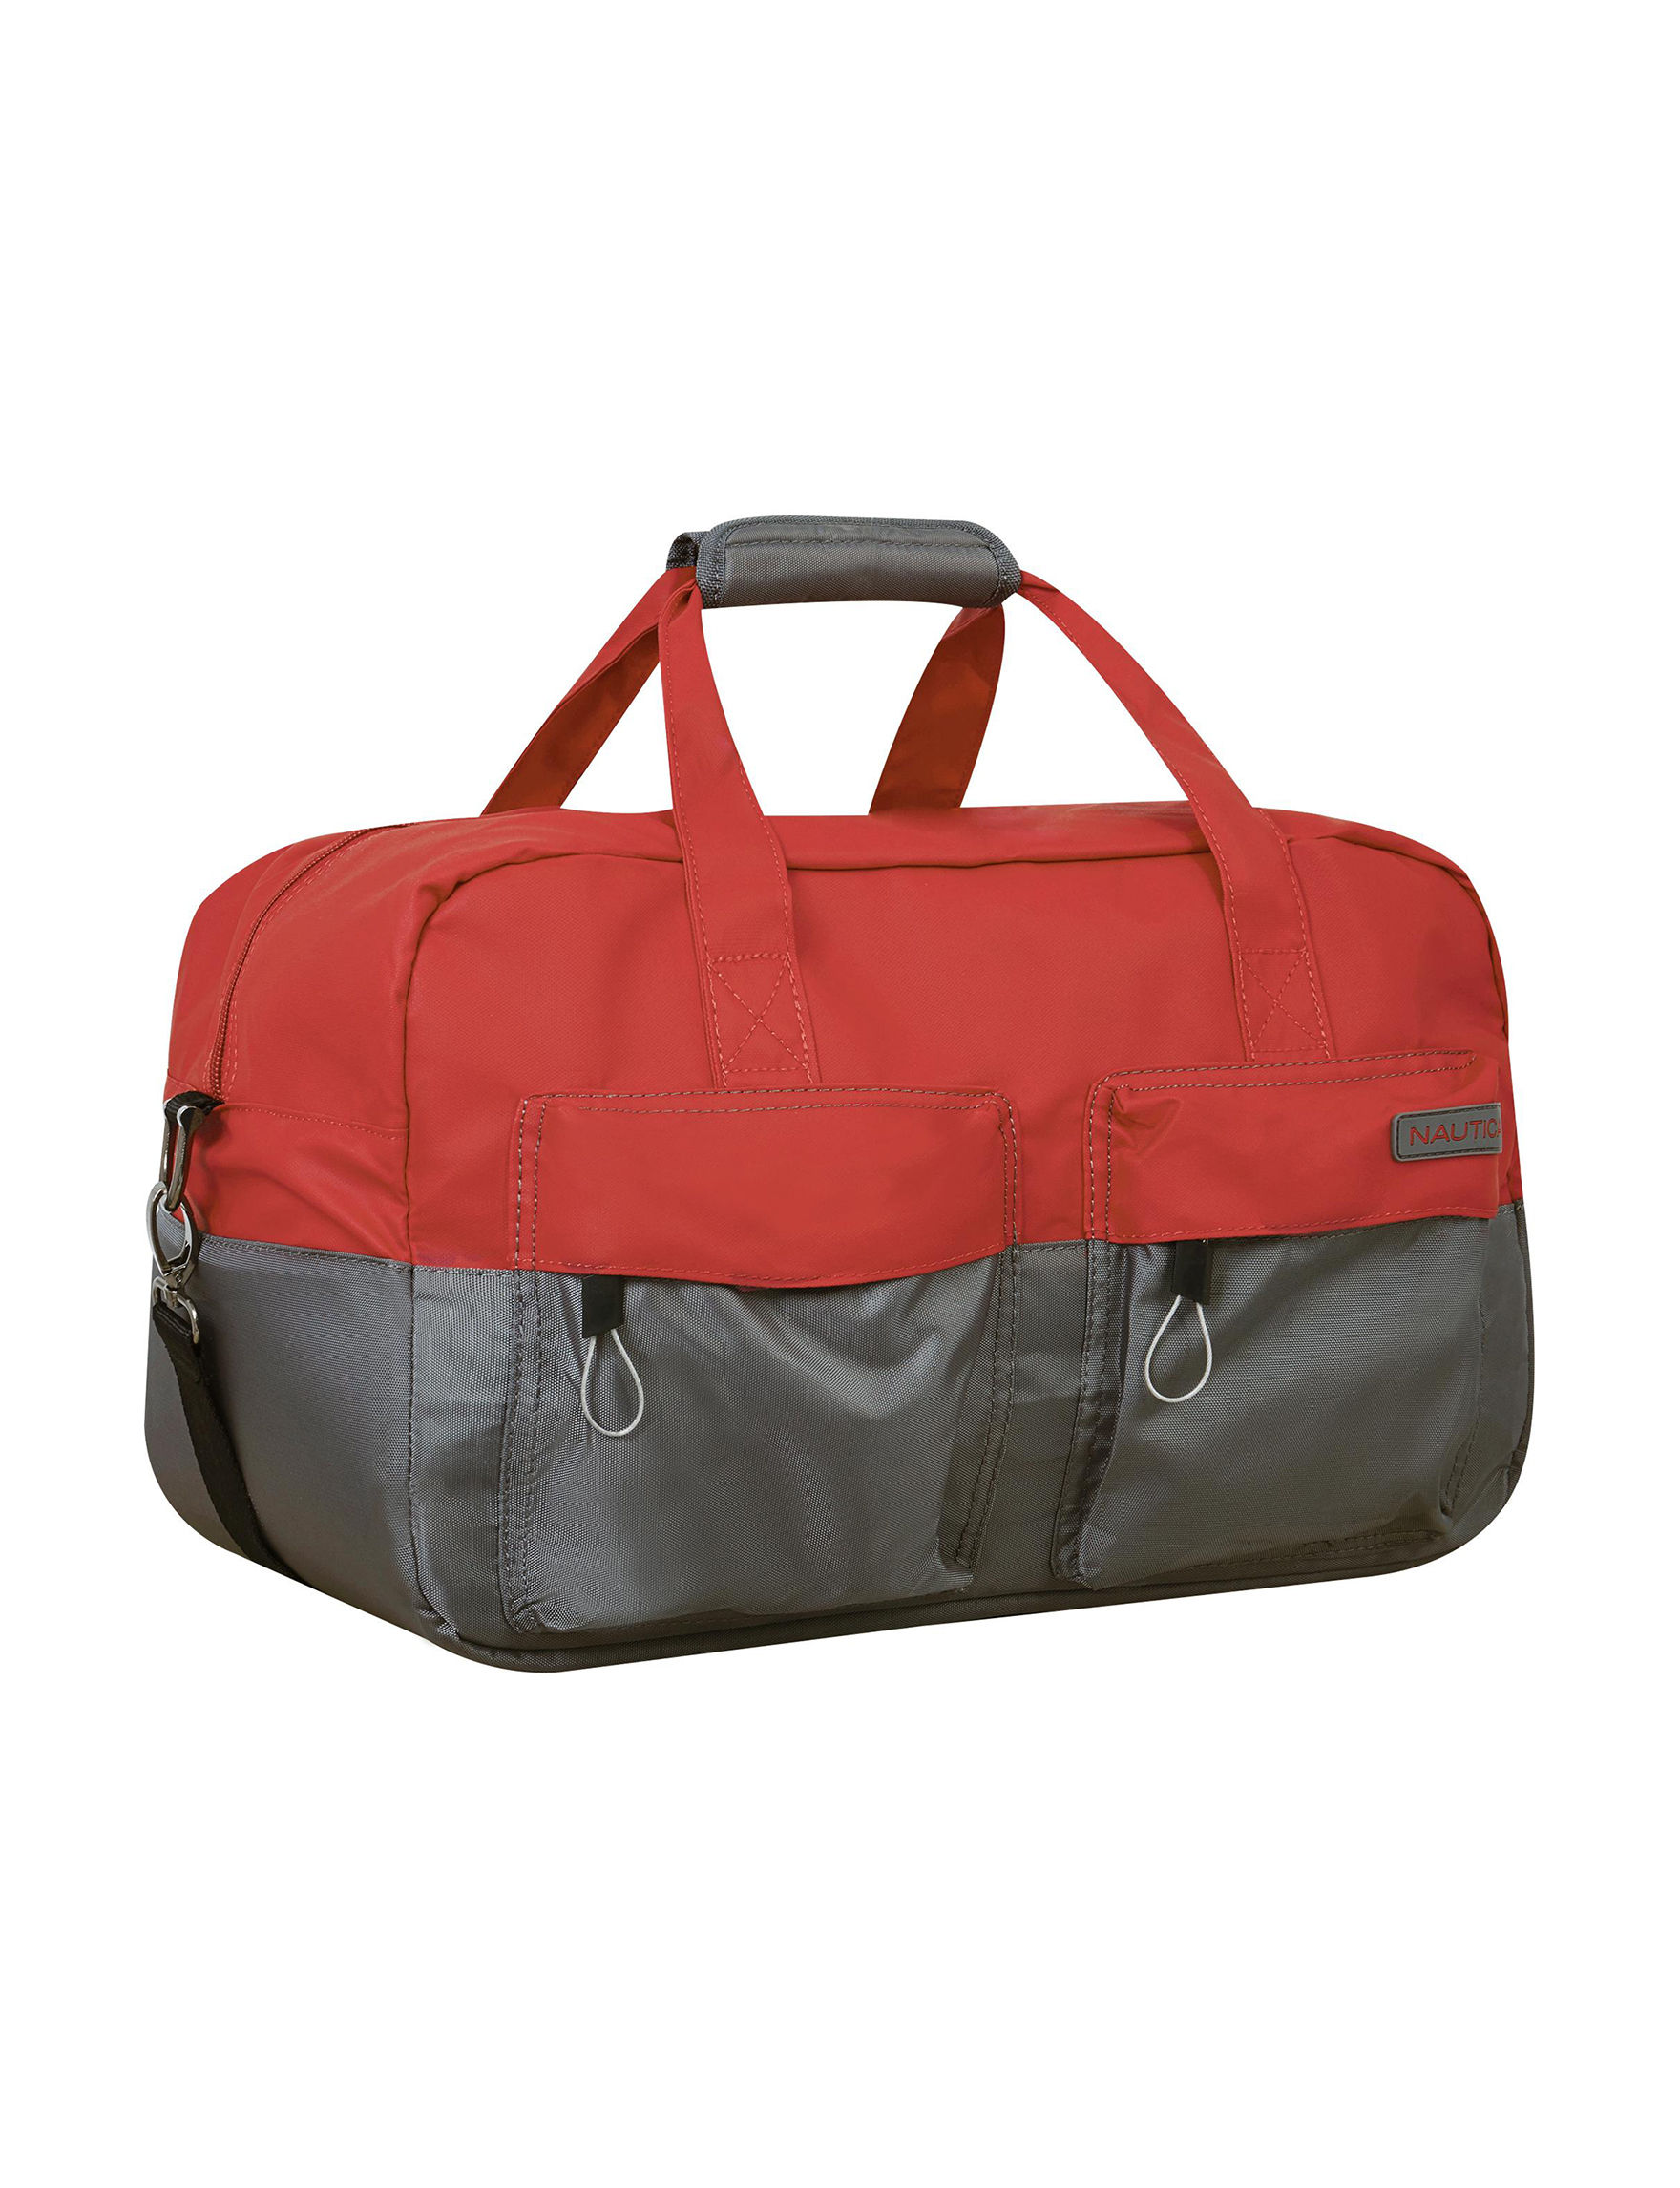 Nautica Red Carry On Luggage Duffle Bags Weekend Bags